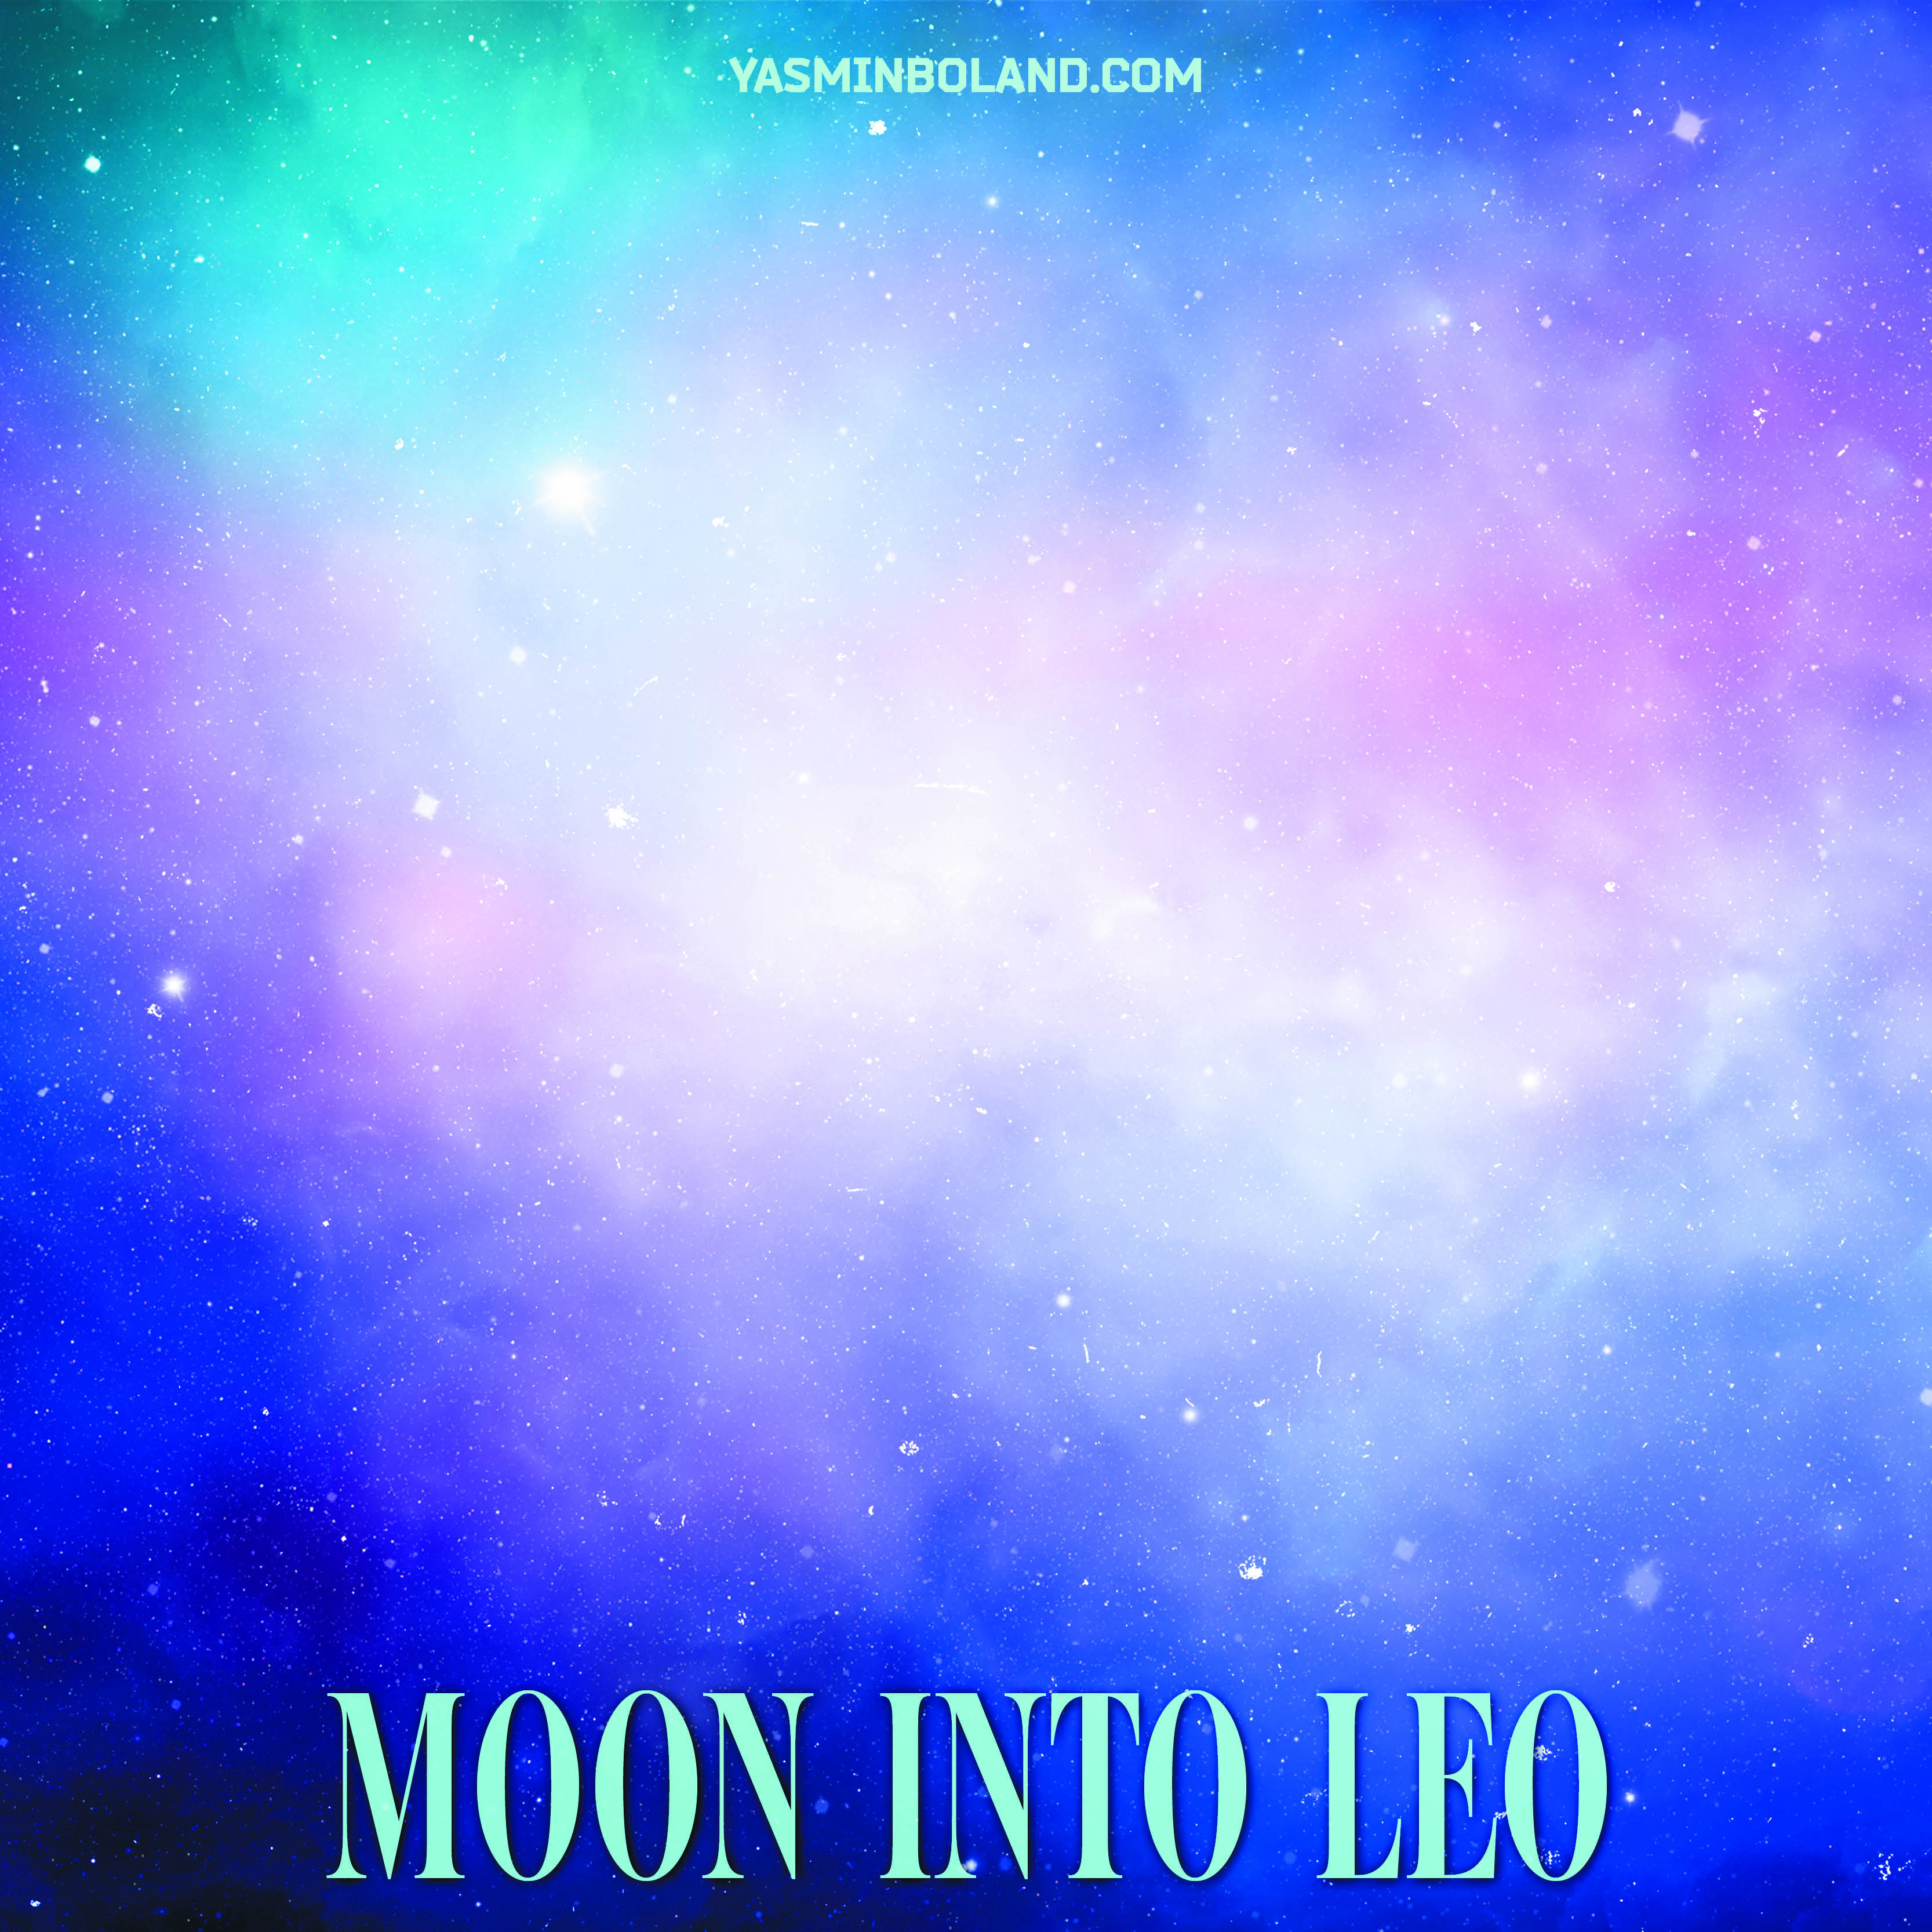 How to work with the Moon today